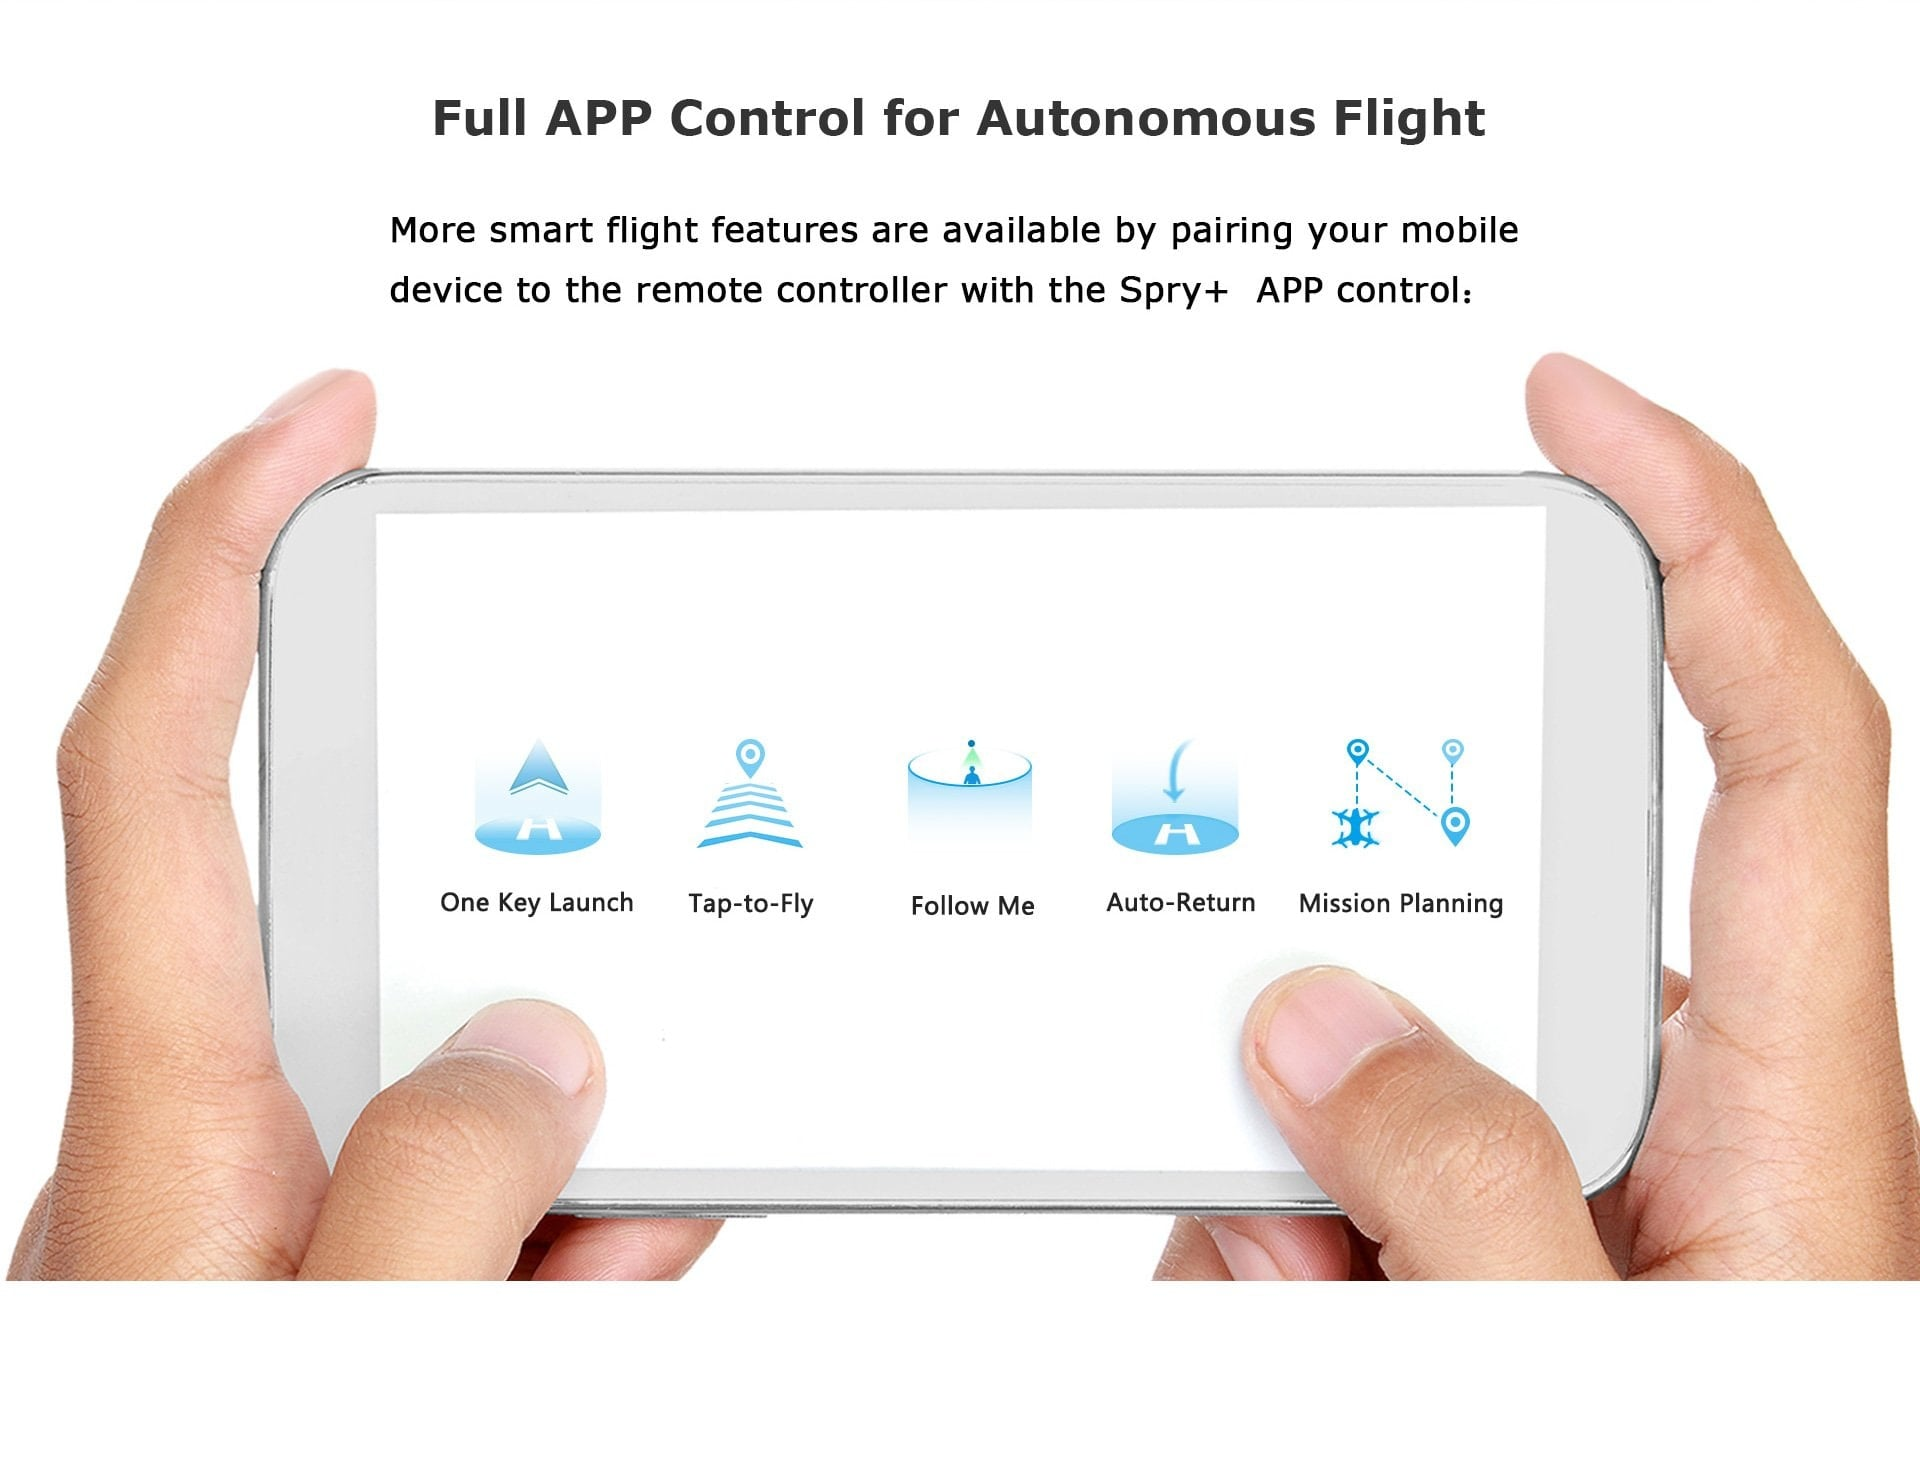 SwellPro - Spry+ Full APP Control